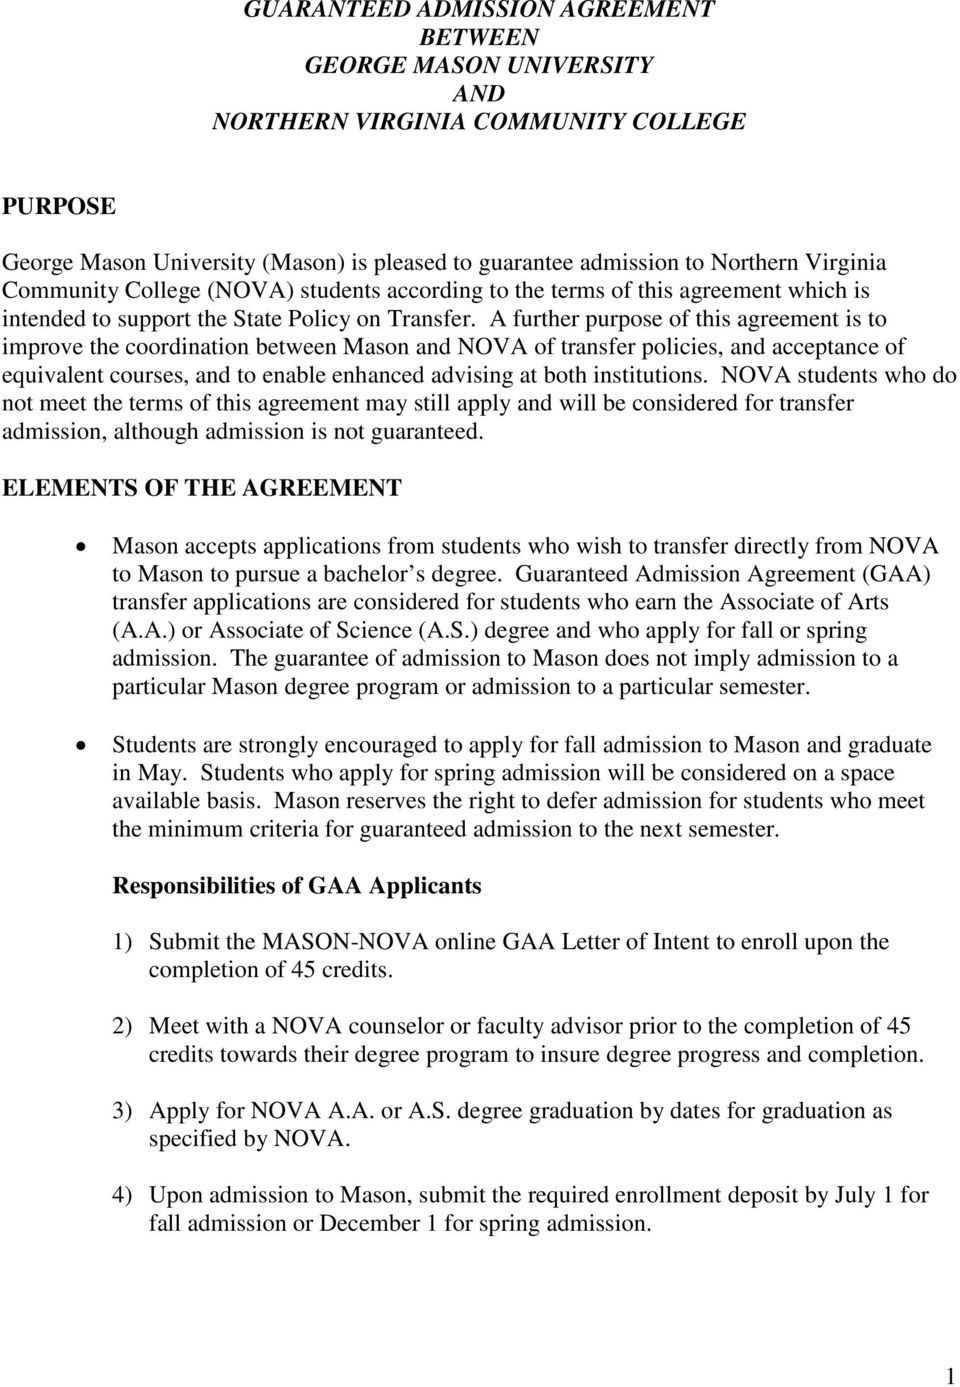 Guaranteed Admission Agreement Between George Mason University And